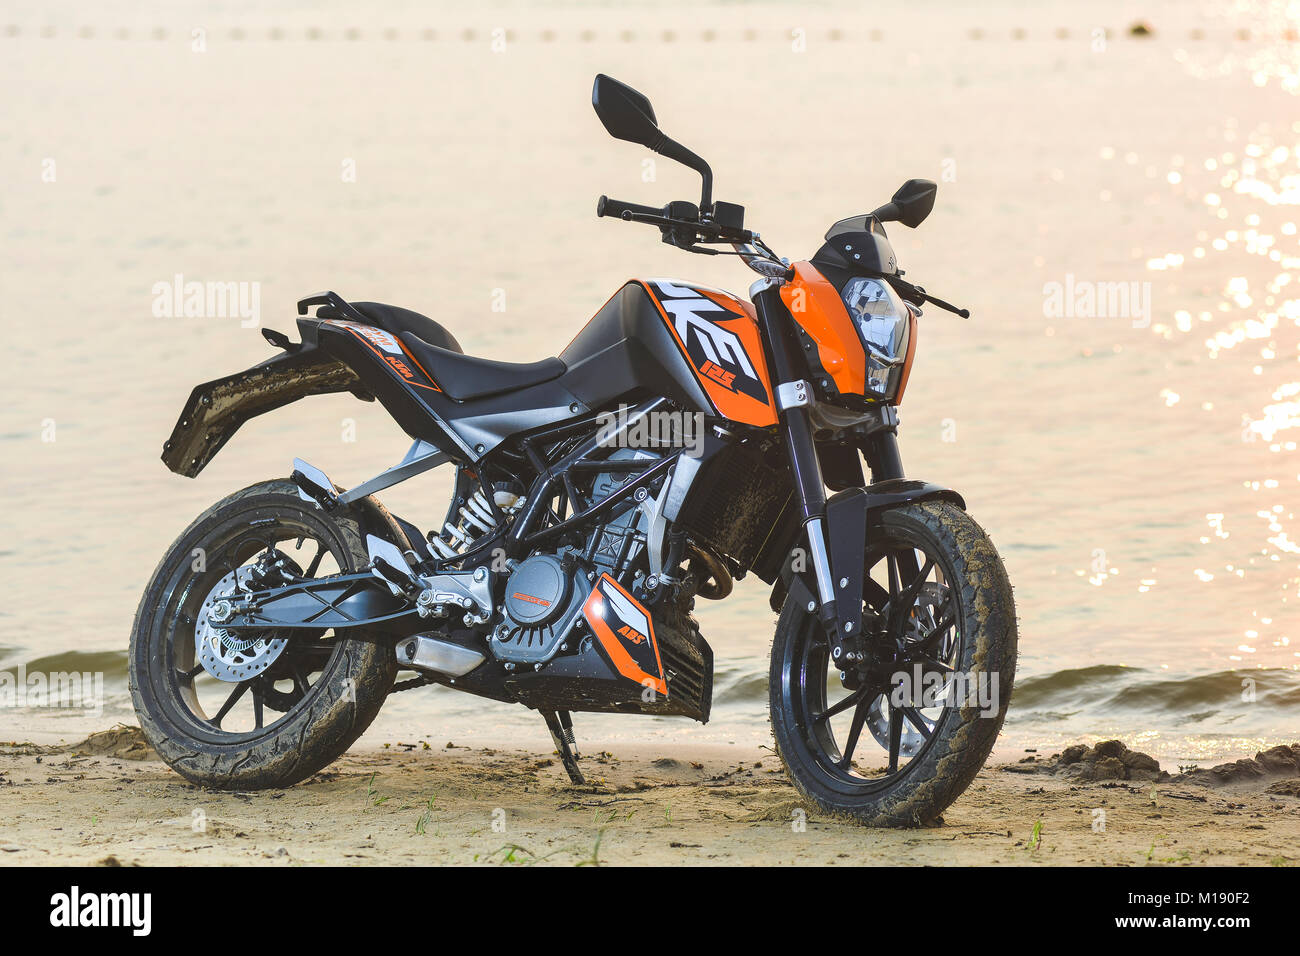 Khabarovsk, Russia - July 27, 2014 : motorcycle KTM Duke stands on the shore of a lake in Khabarovsk on July 27, - Stock Image